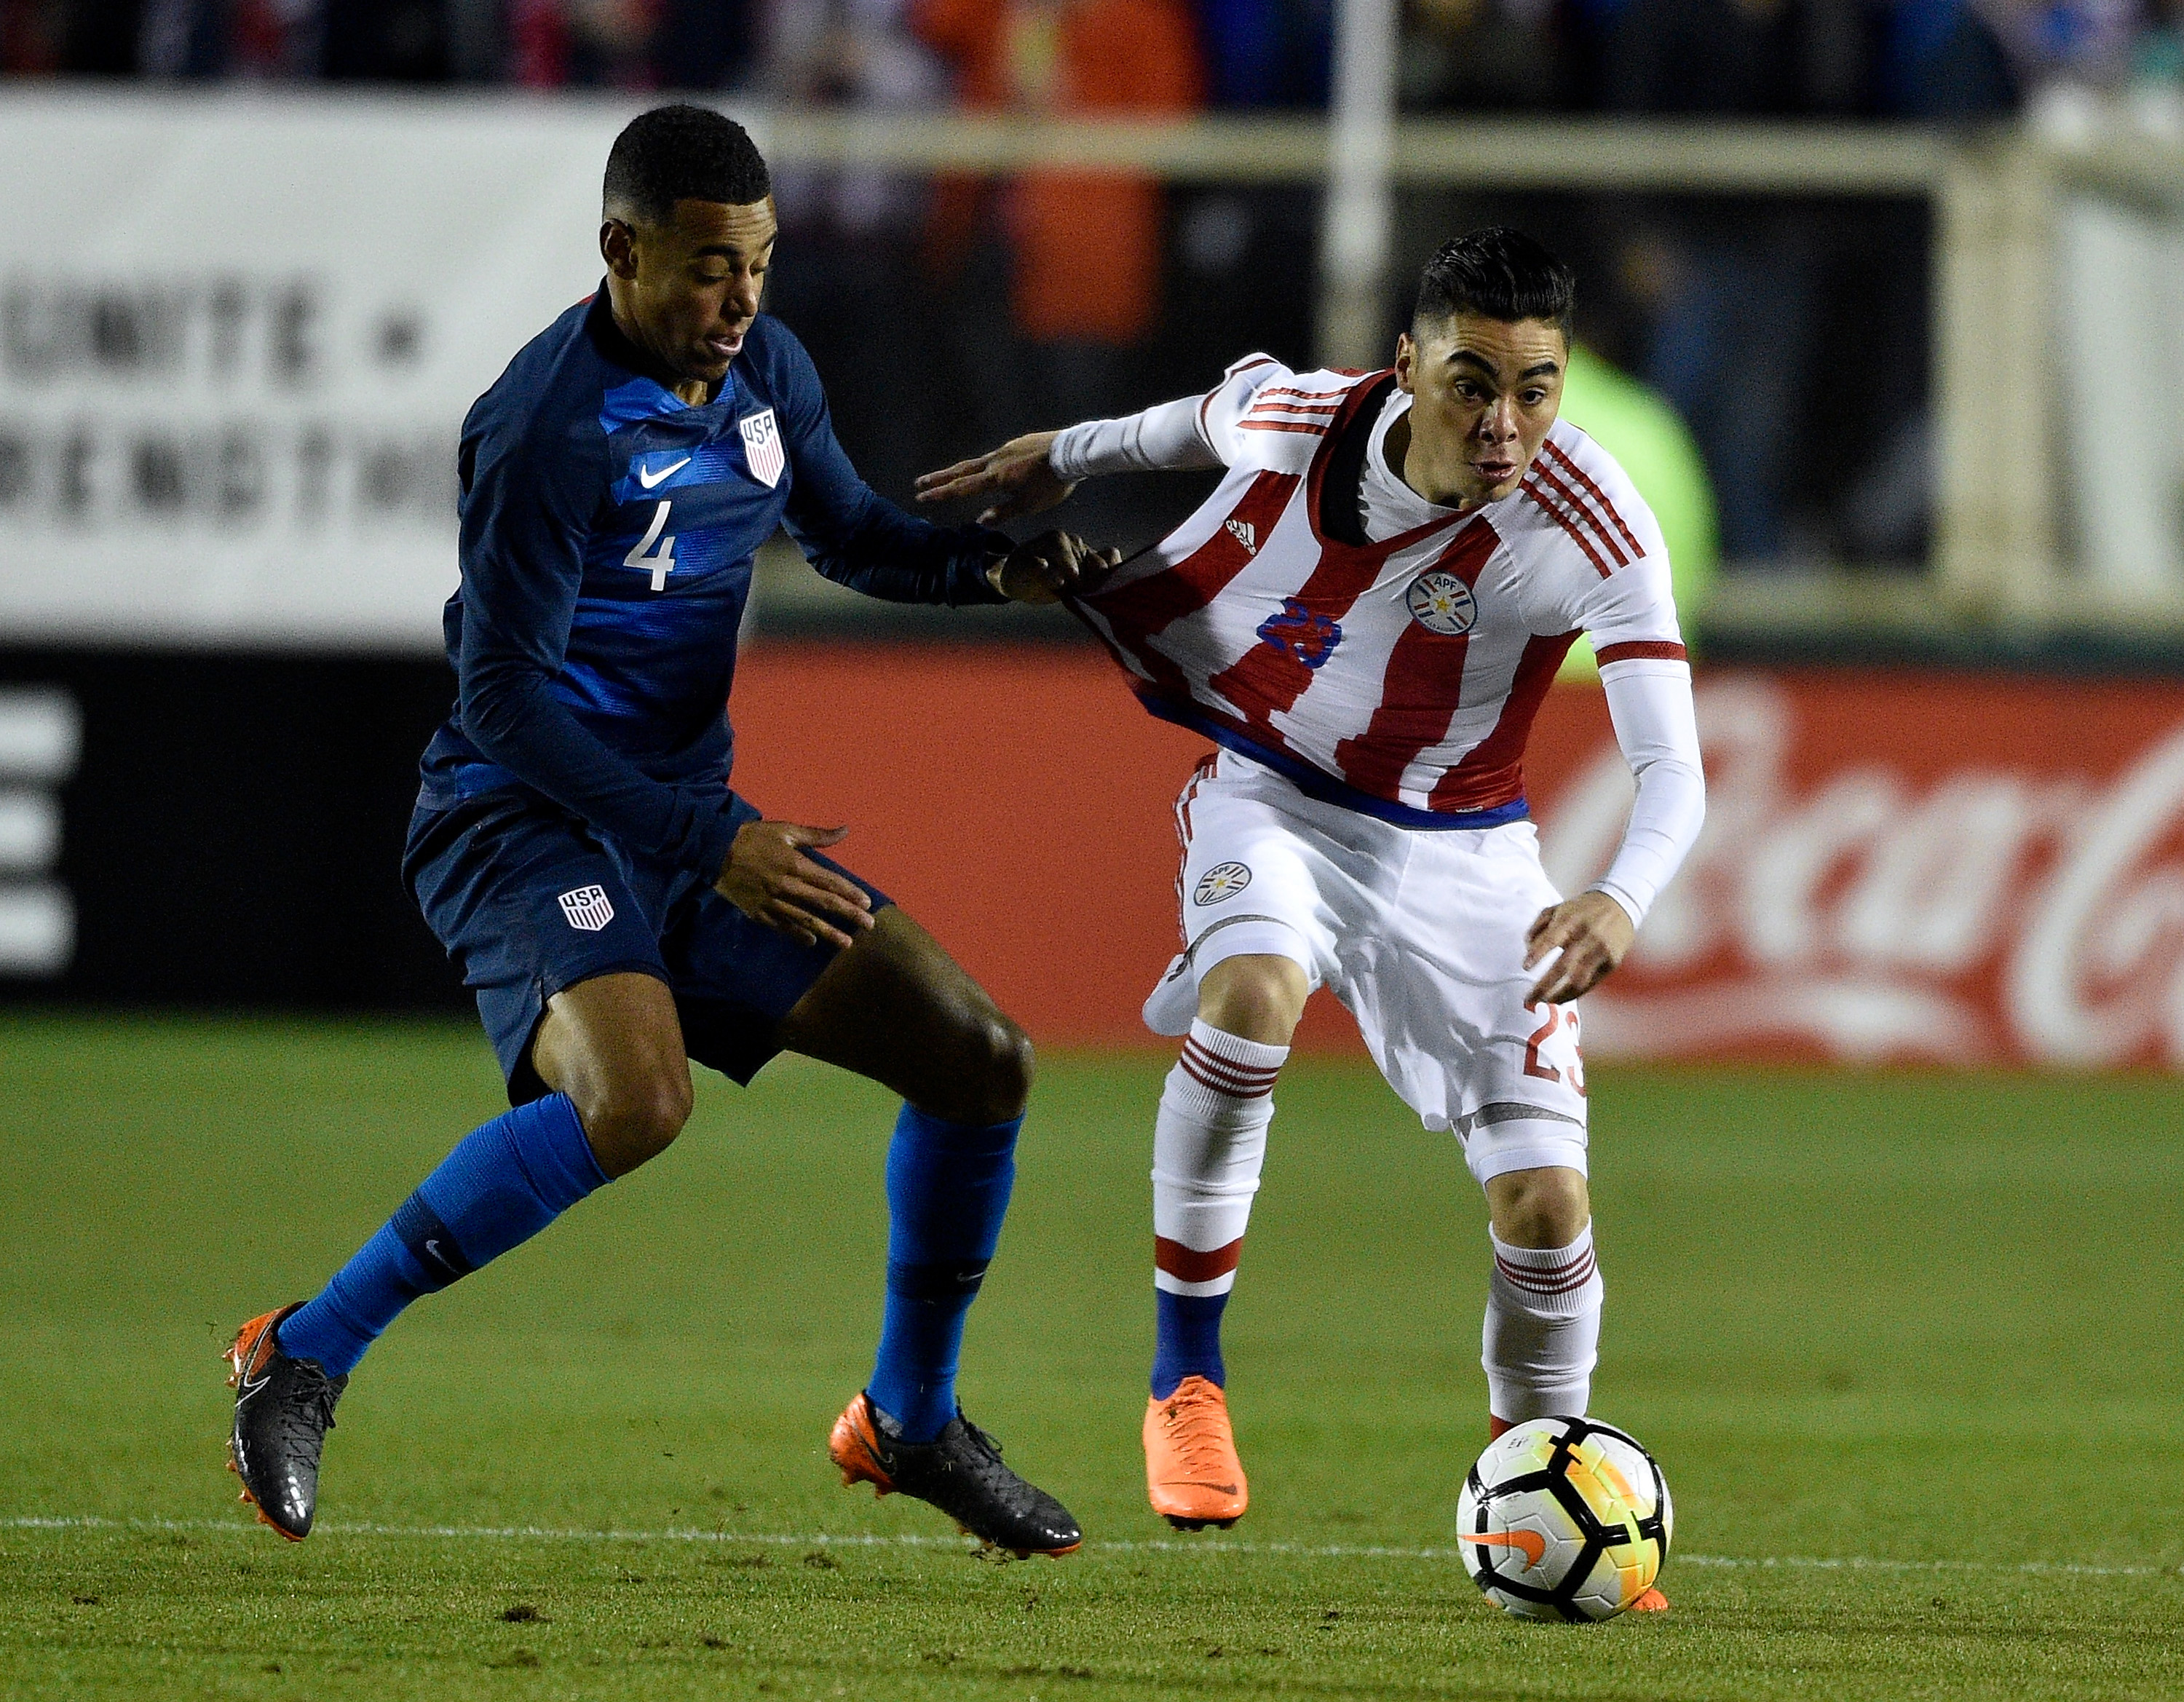 Almiron (L) close to joining Arsenal (Photo by Grant Halverson/Getty Images)